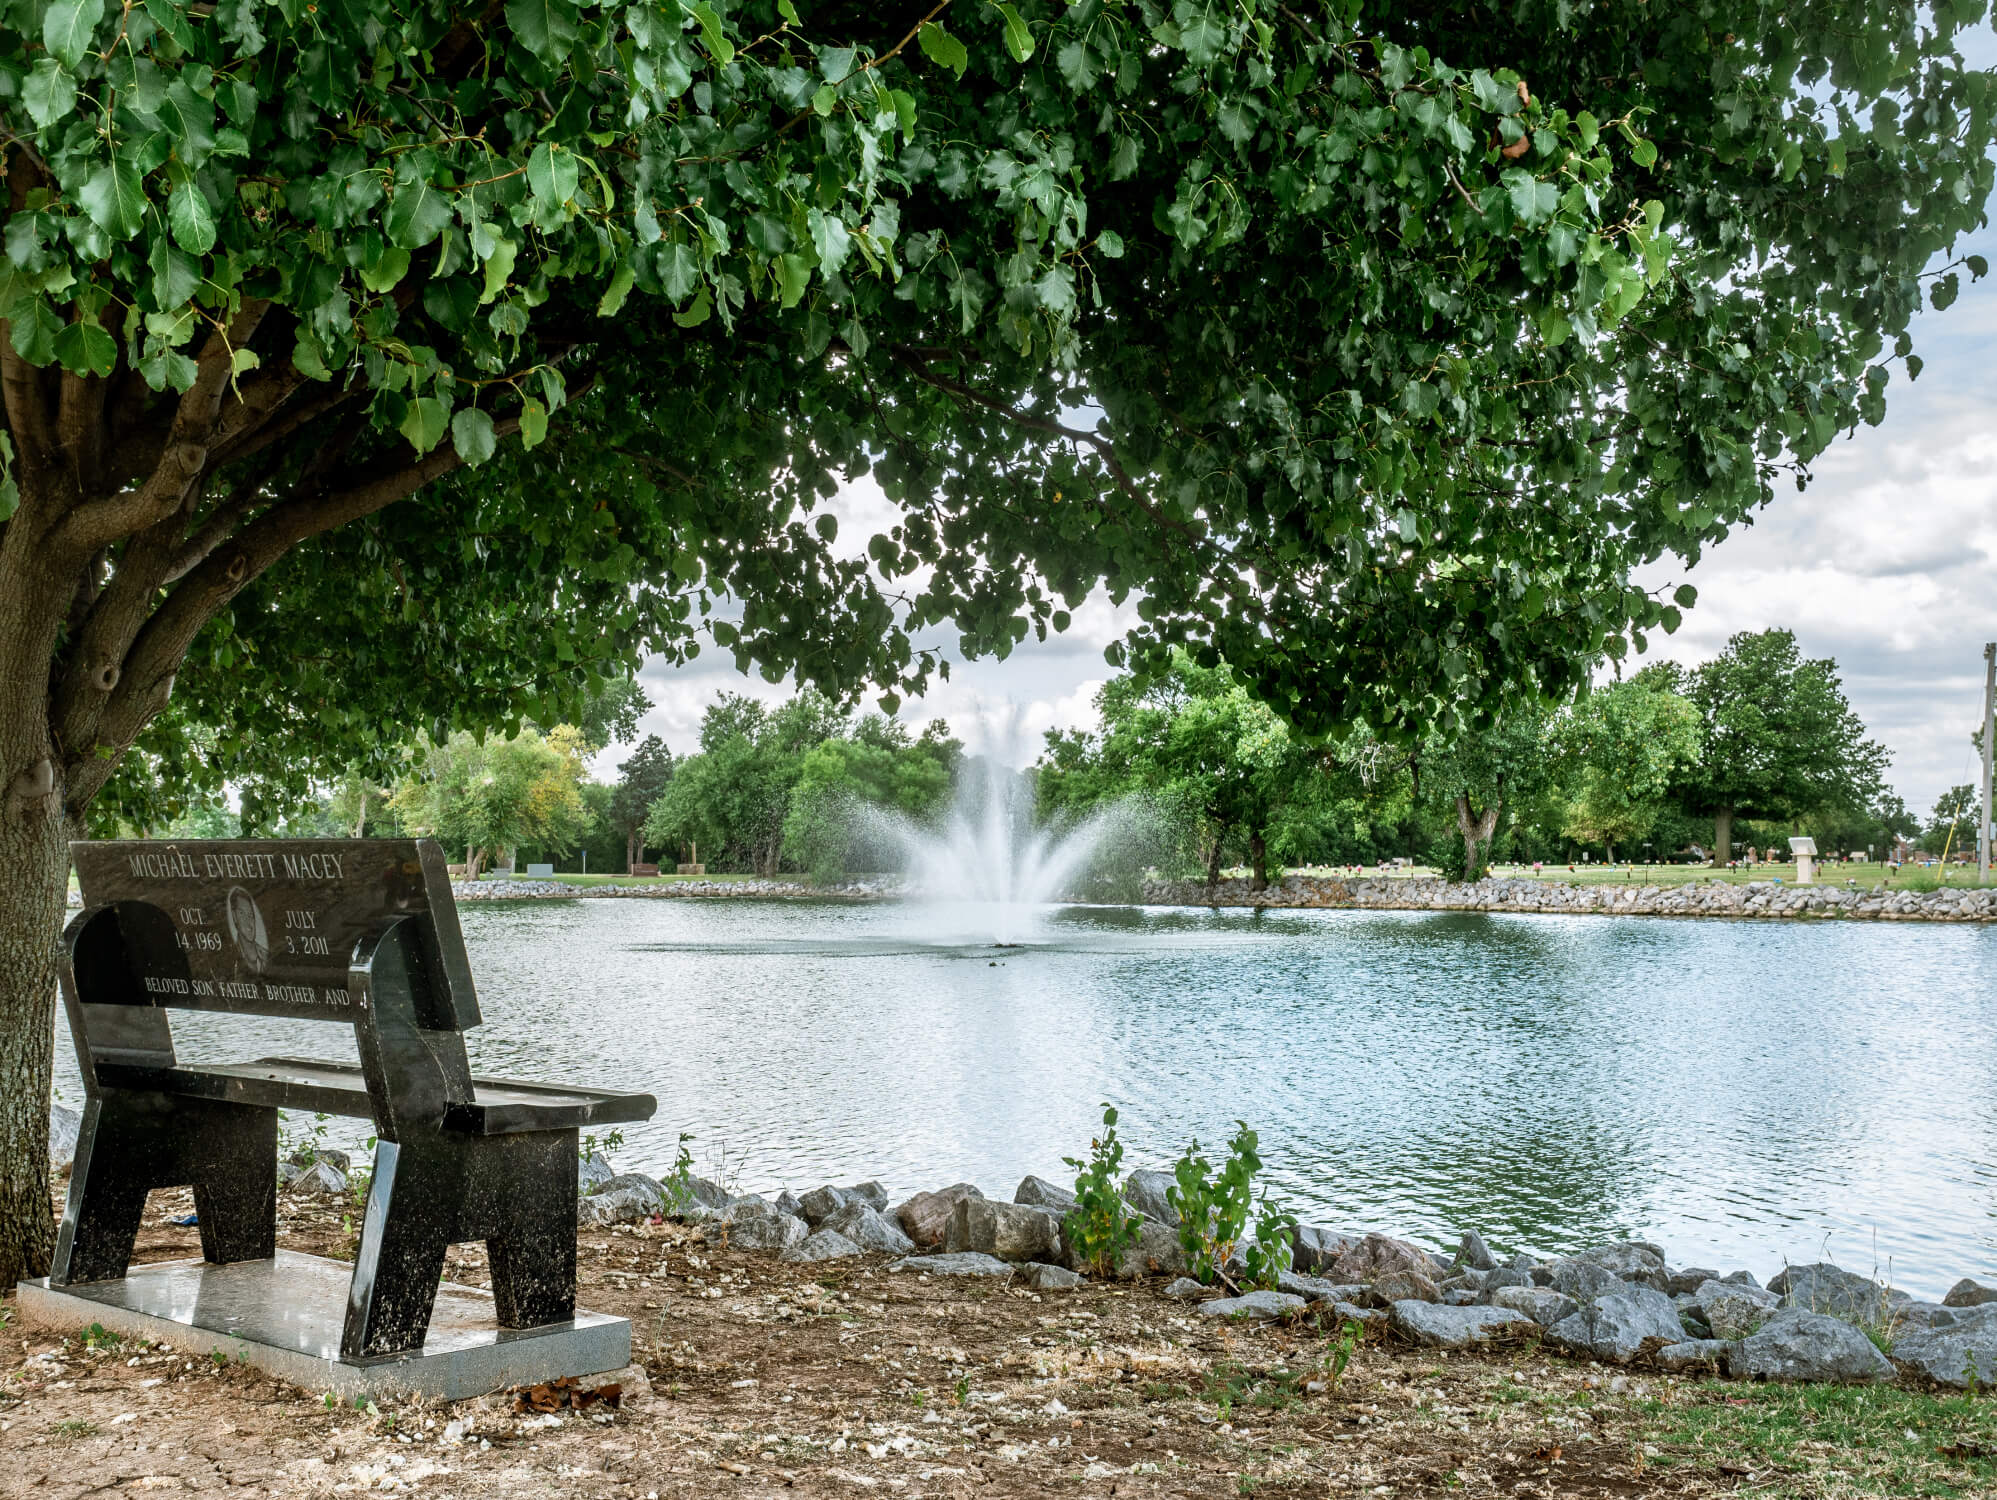 Bench and water features at oklahoma city cemetery